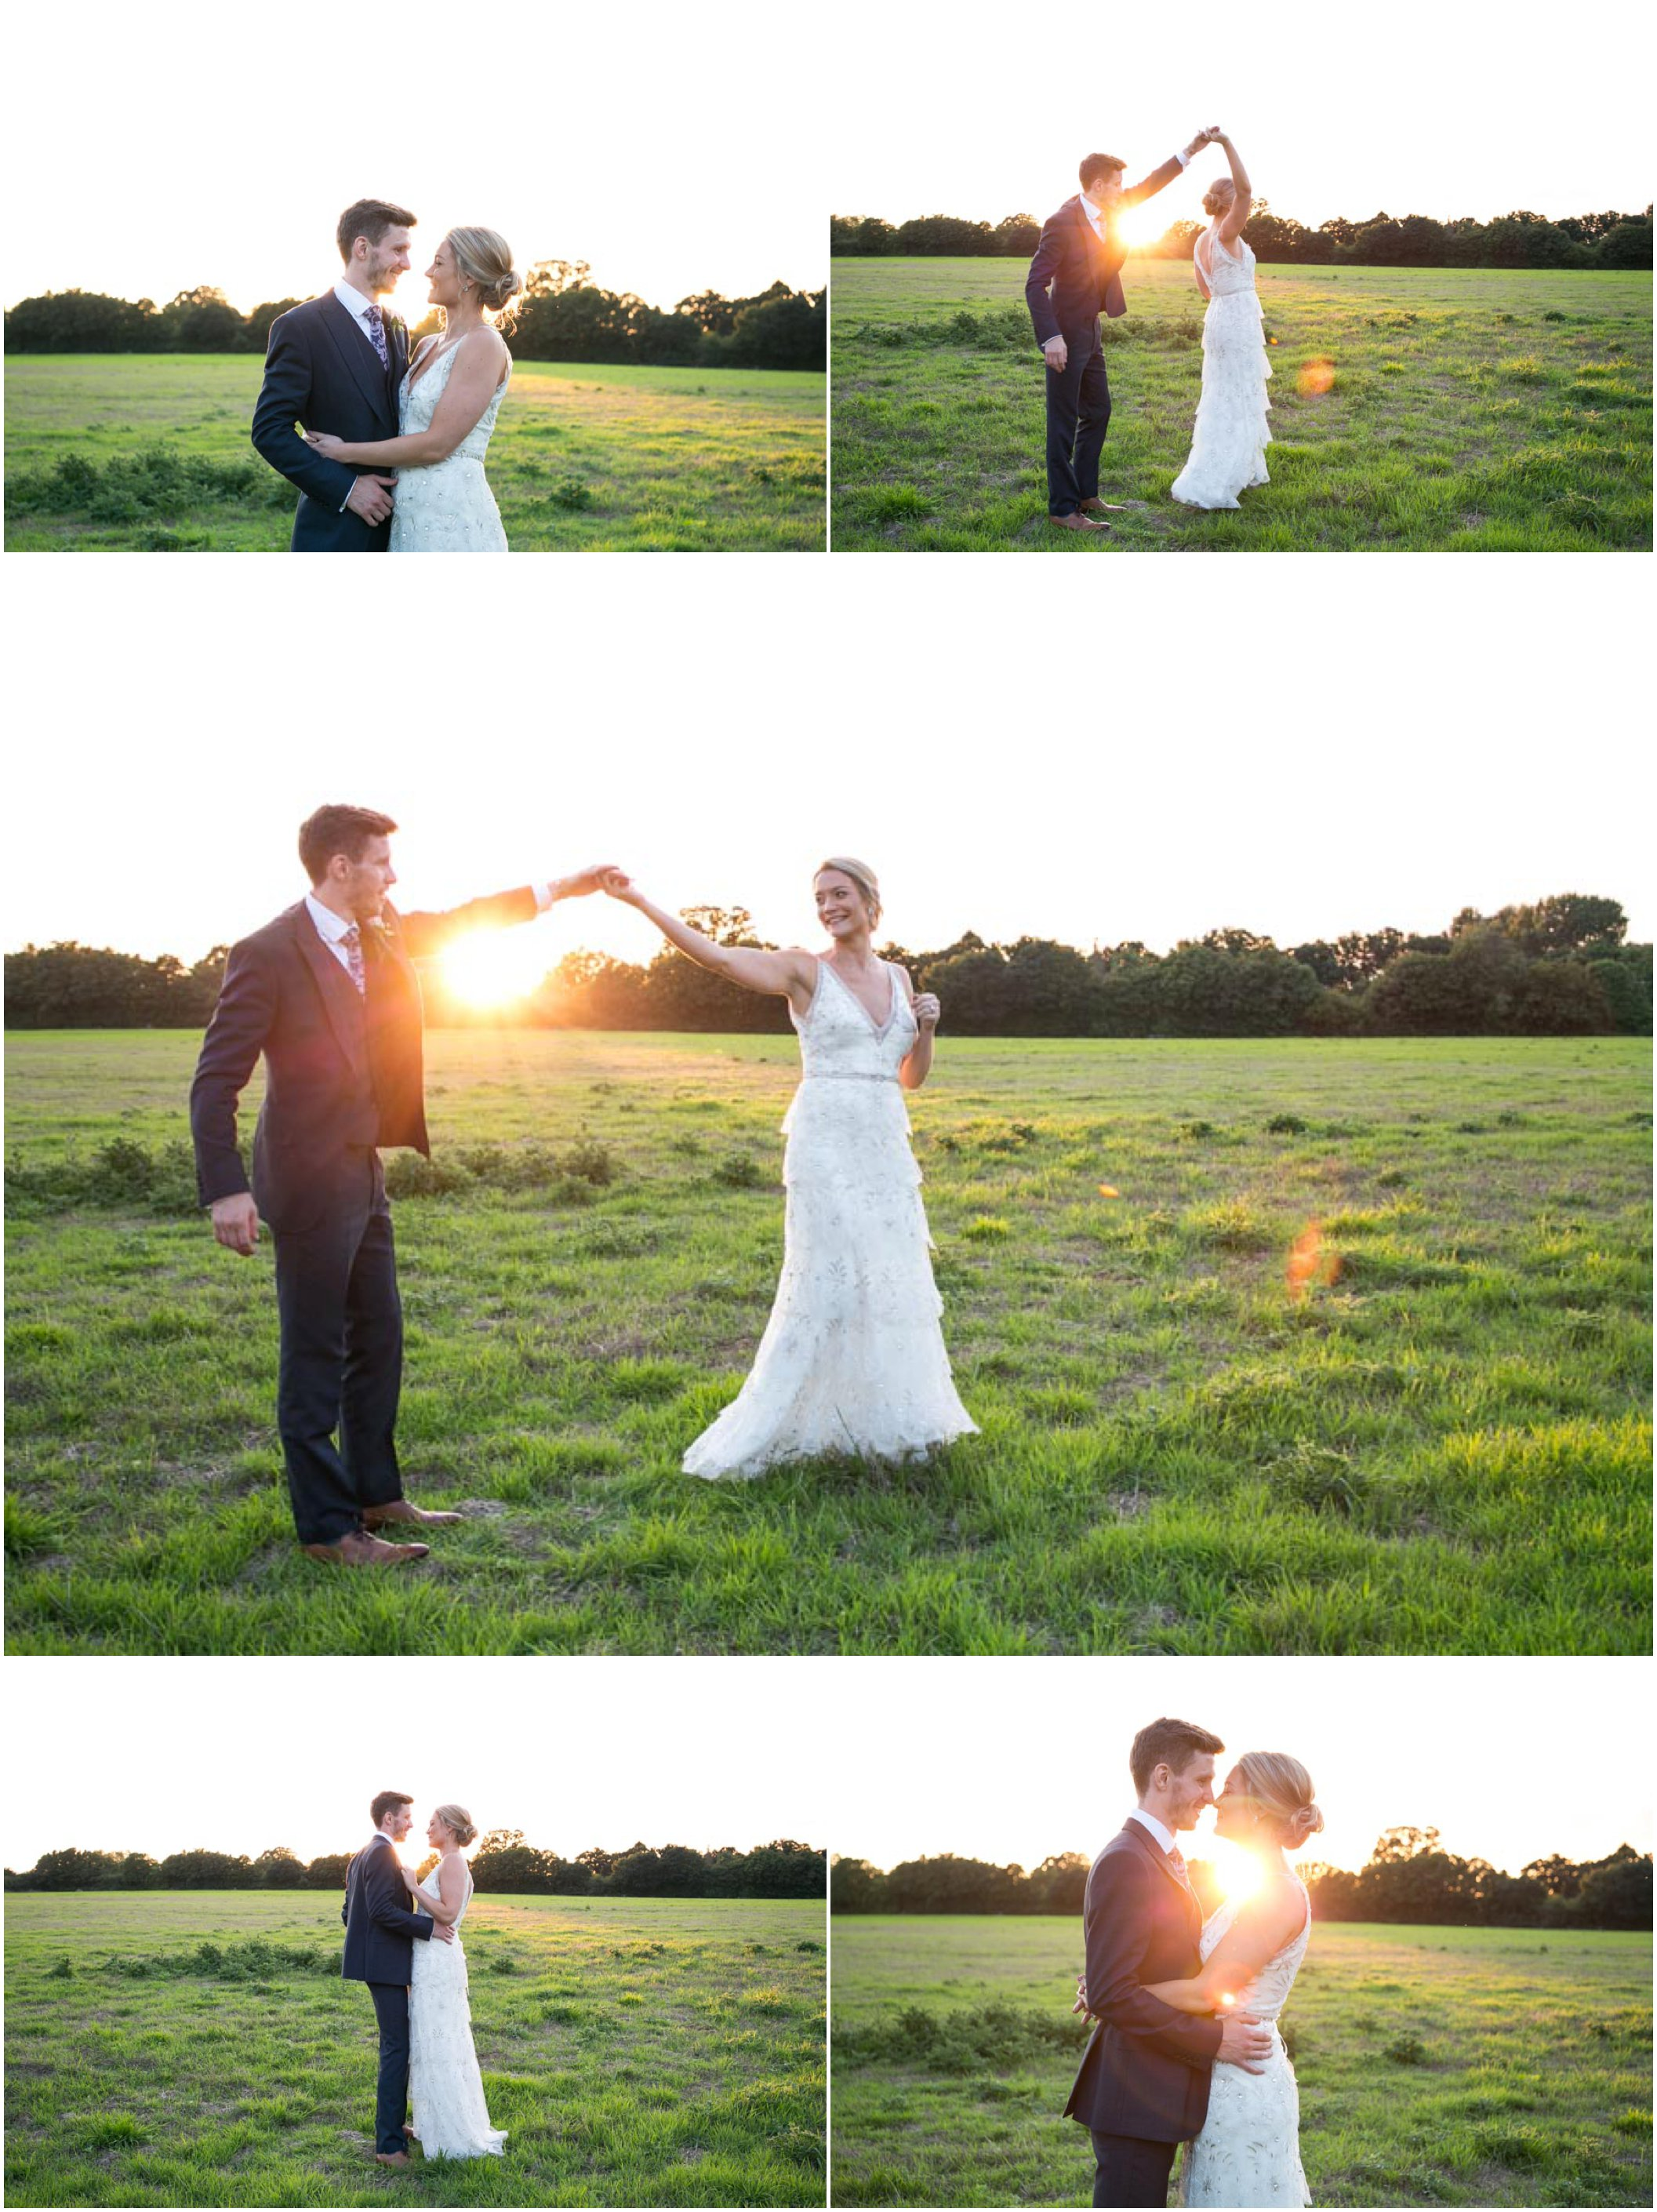 bride and groom dancing in the golden light of summer evening